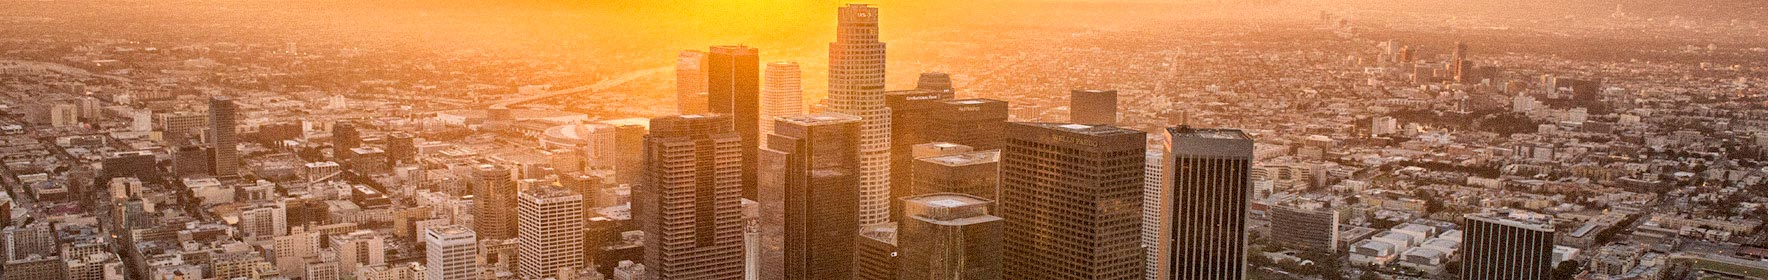 Image of Downtown Los Angeles at sunset